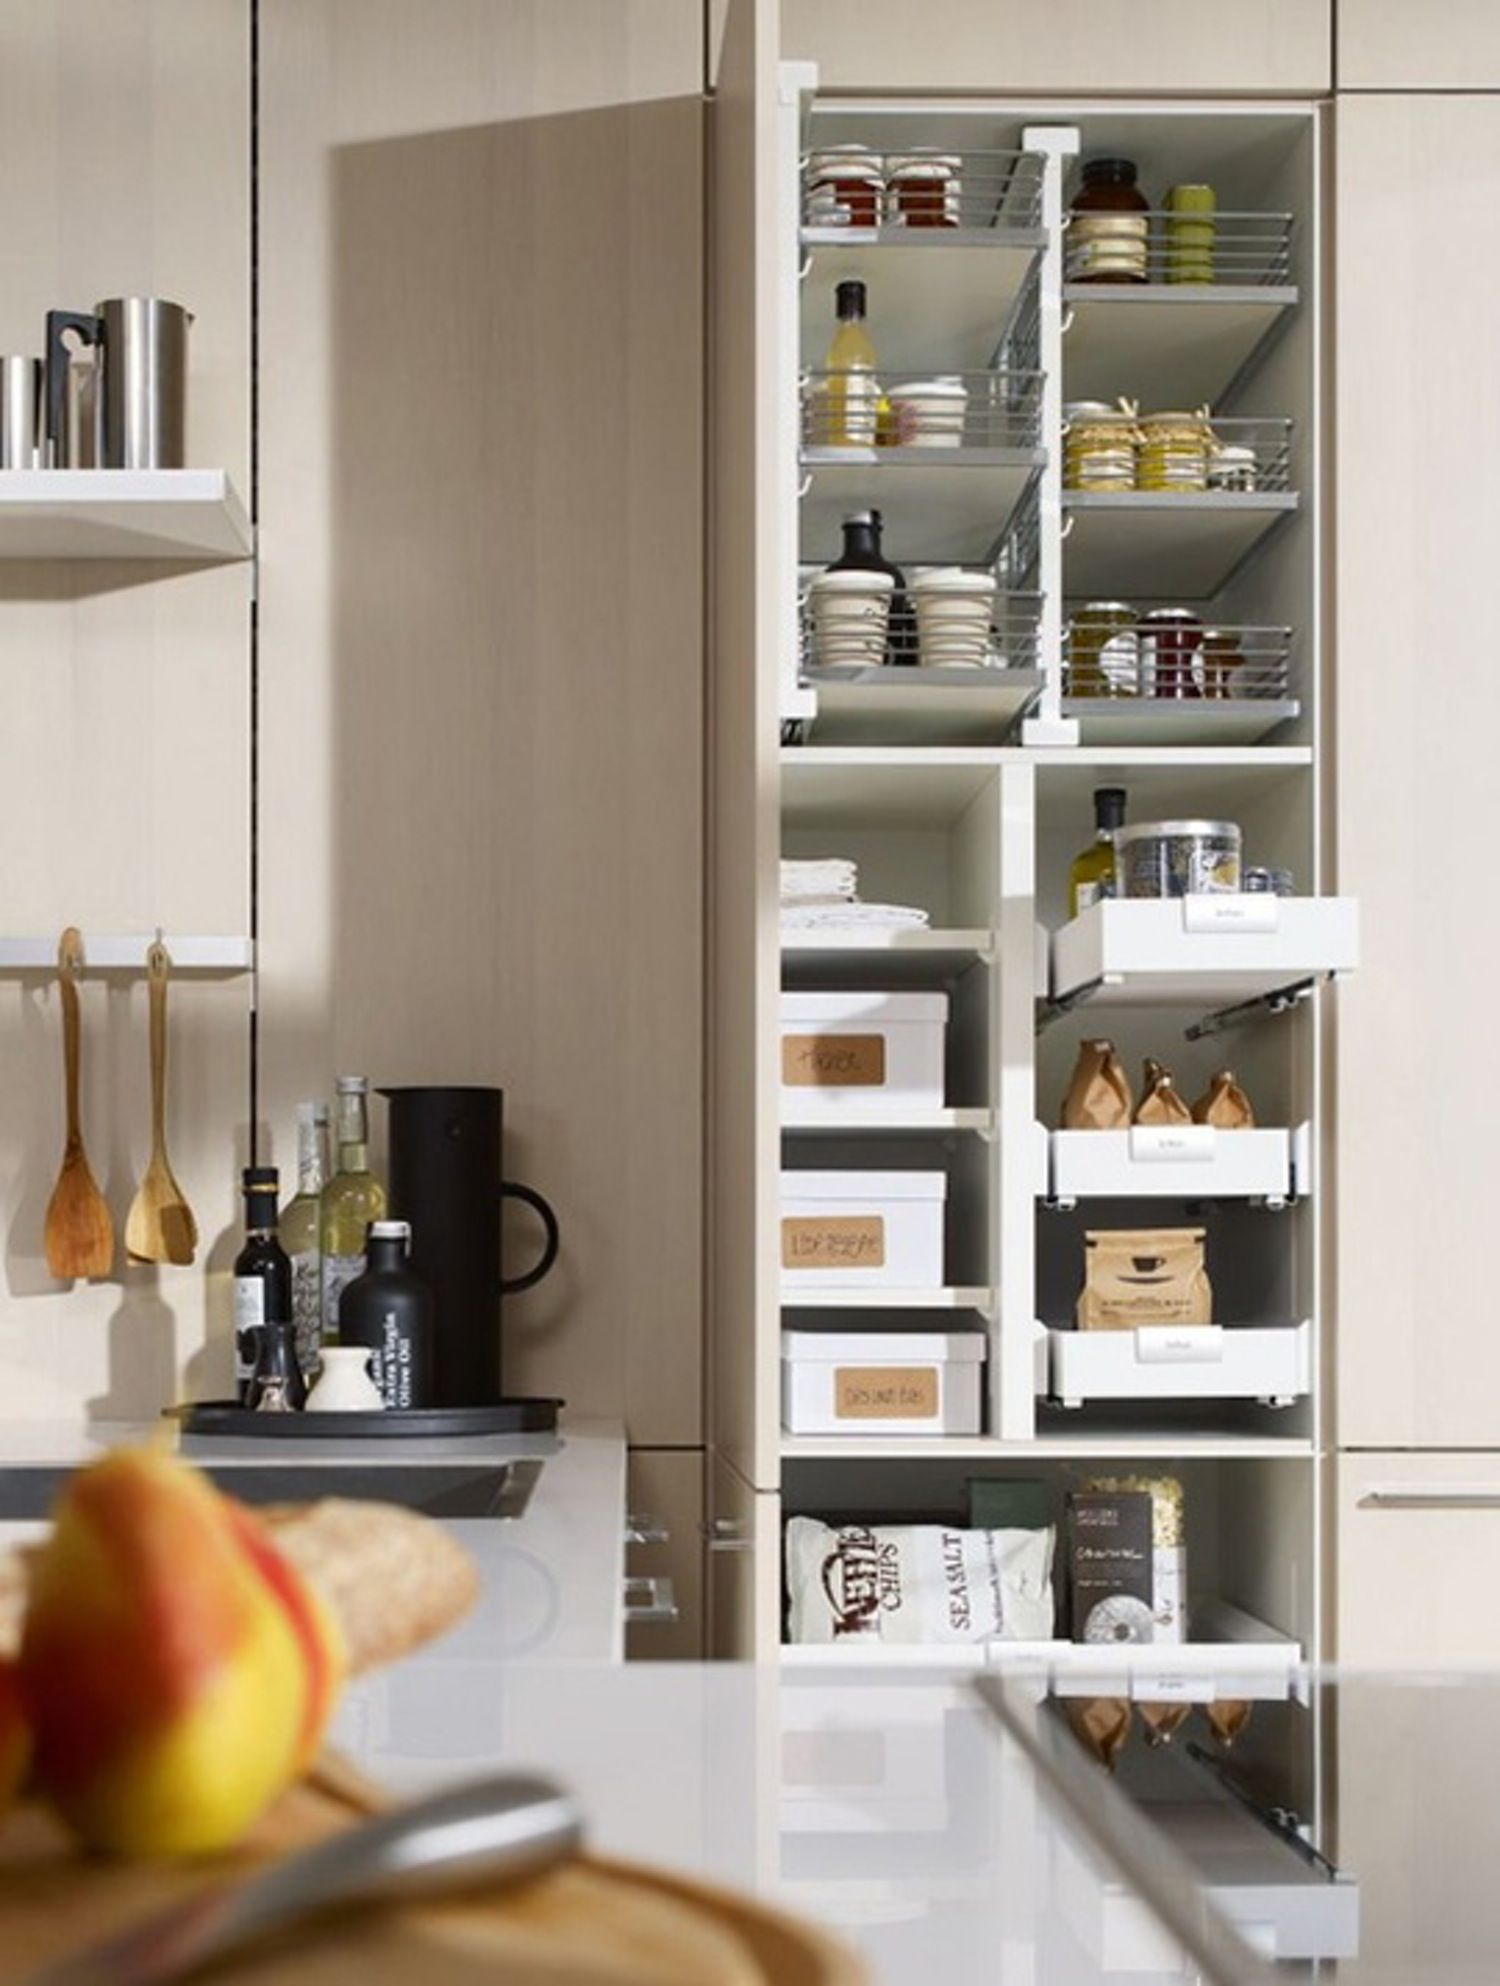 8 Sources For Pull Out Kitchen Cabinet Shelves Organizers And Sliding Drawers Kuchentrends Moderne Kuchenideen Schmale Kuche